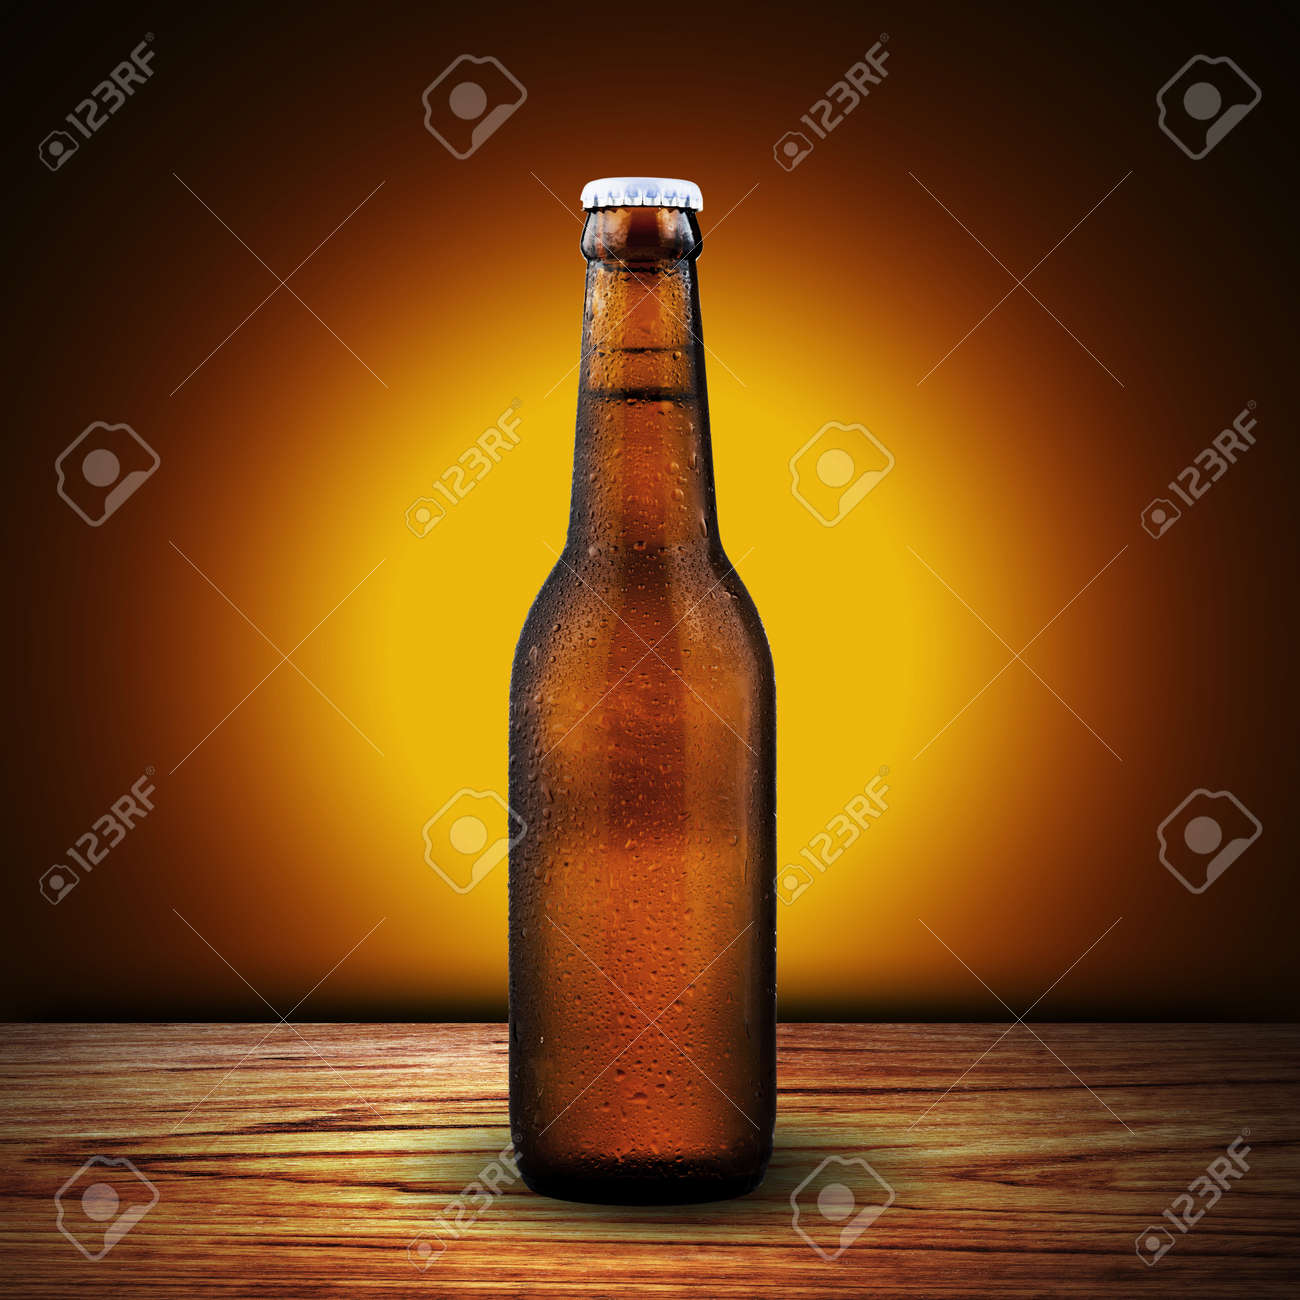 Bottle of beer on wood table with yellow background Stock Photo - 18249837